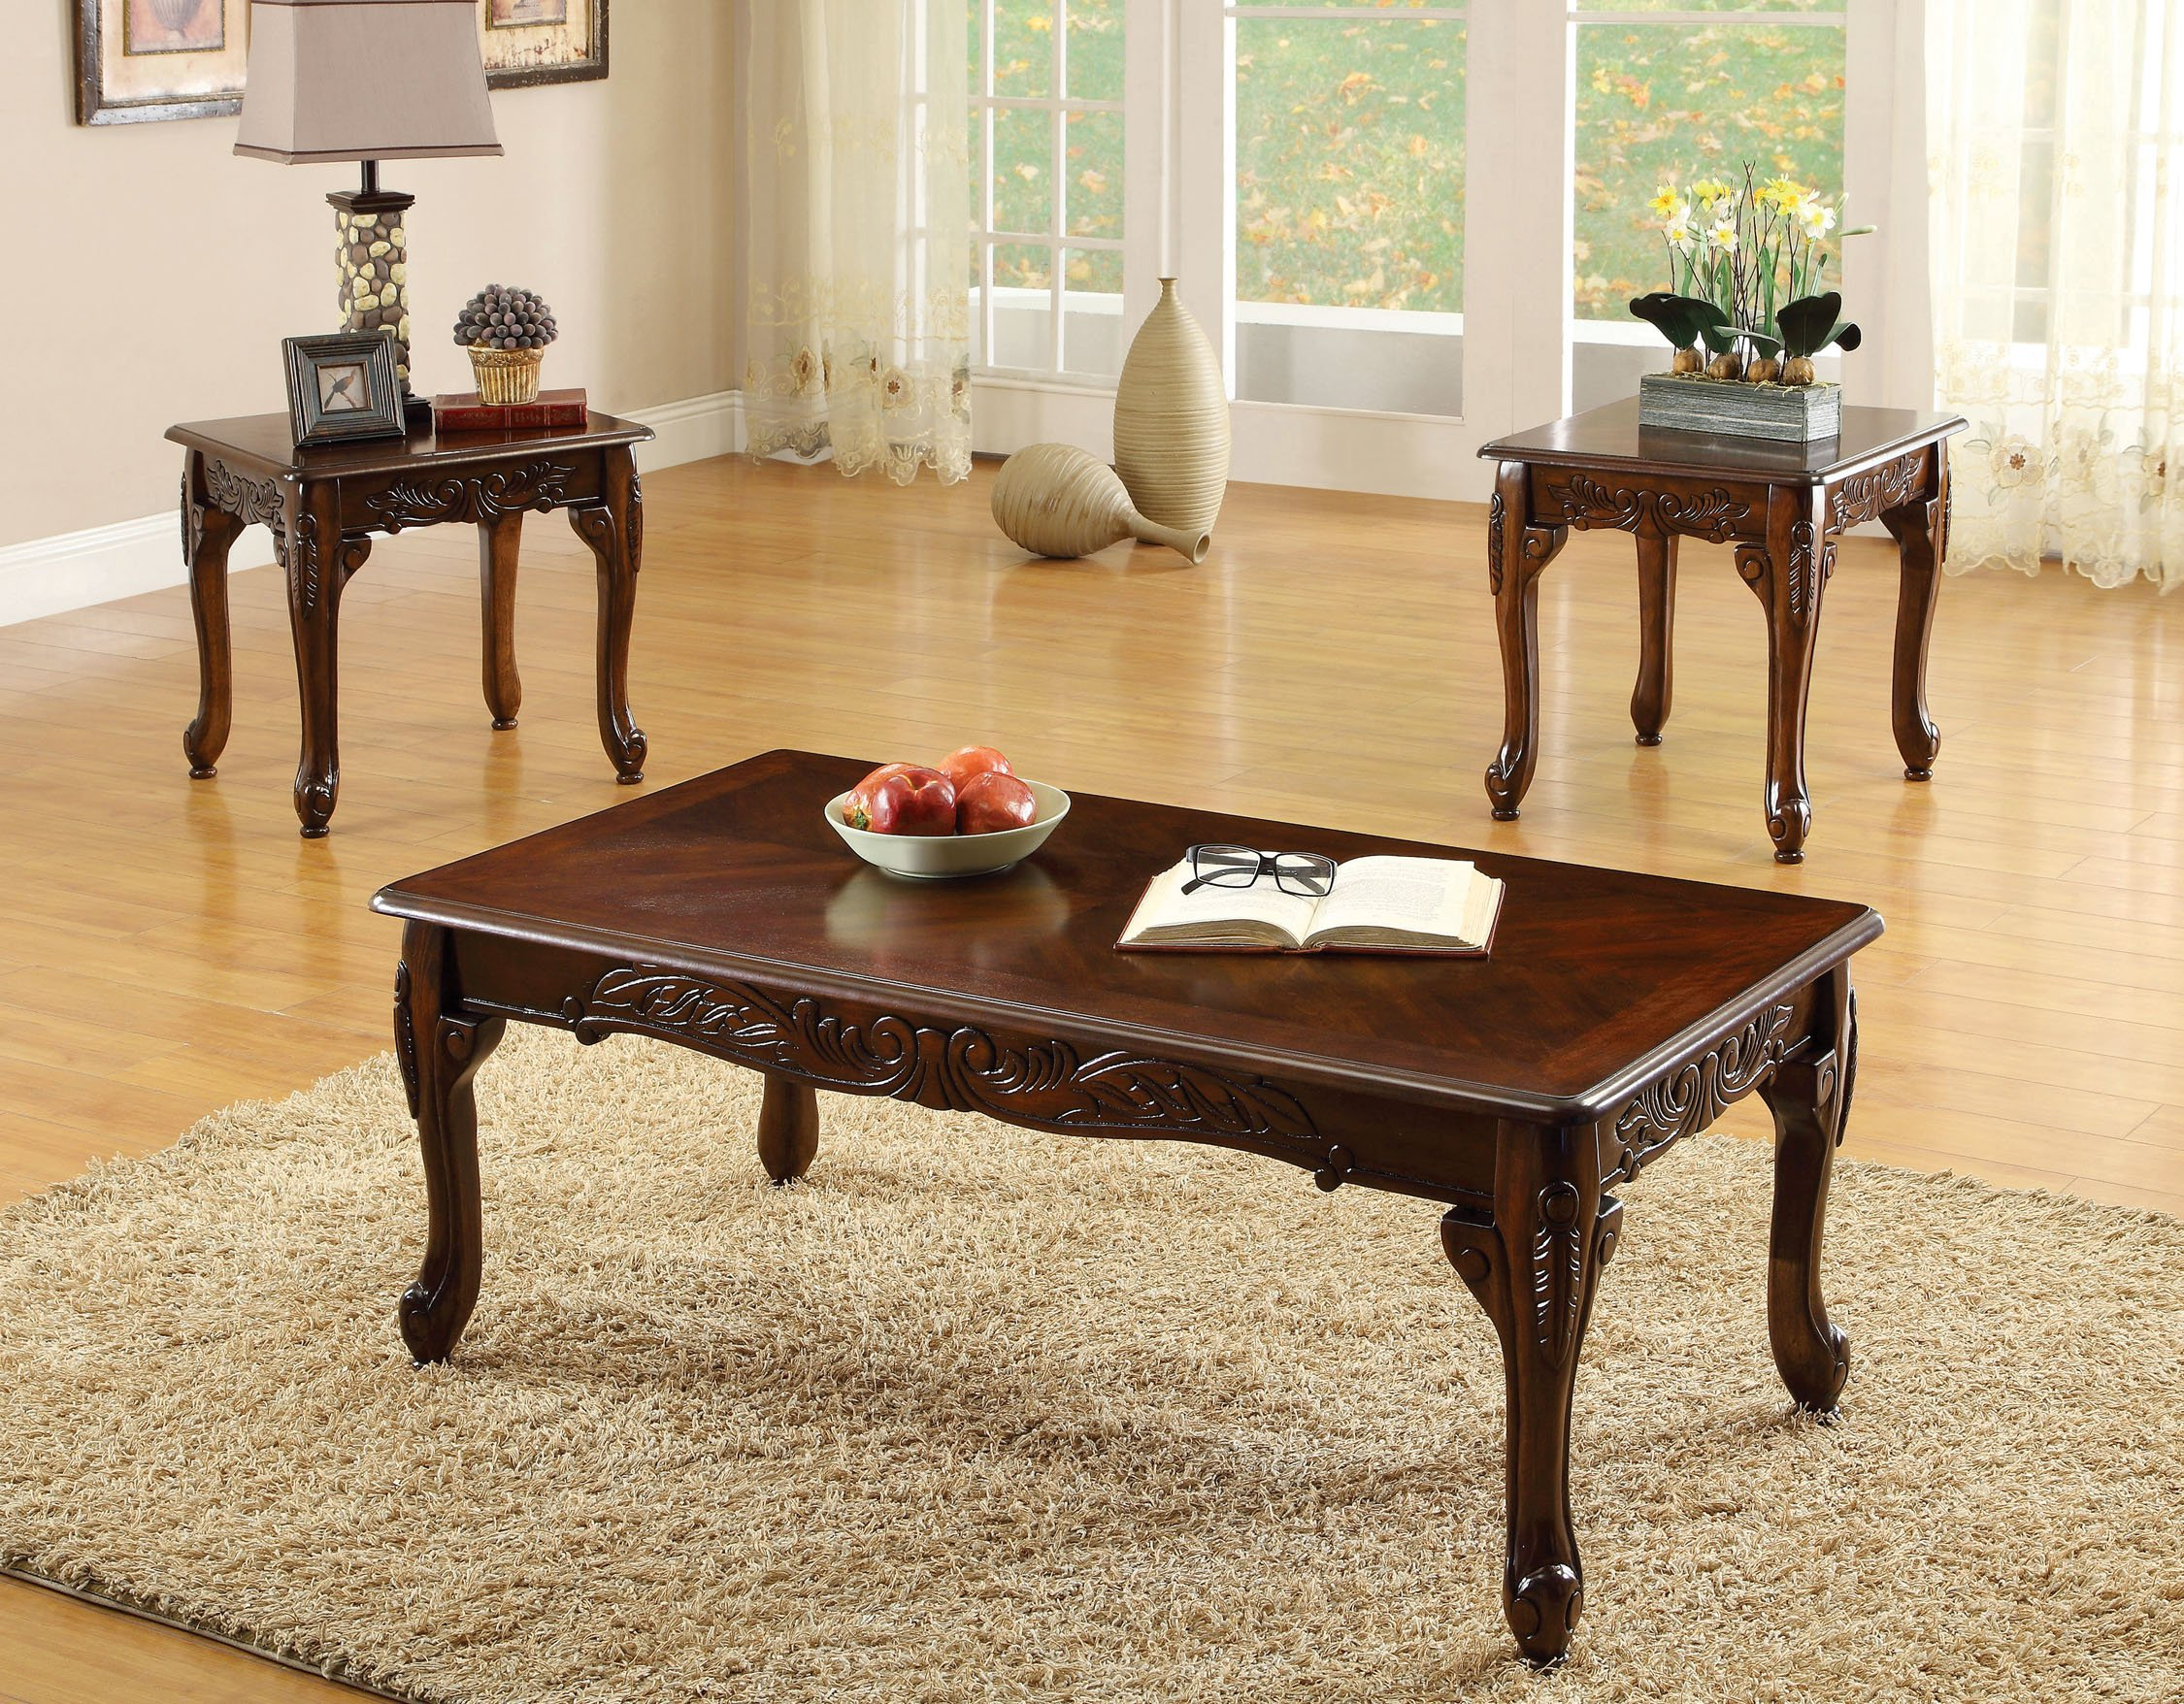 Furniture of America 3-Piece Chesapeke Table Set, Cherry Finish by Furniture of America